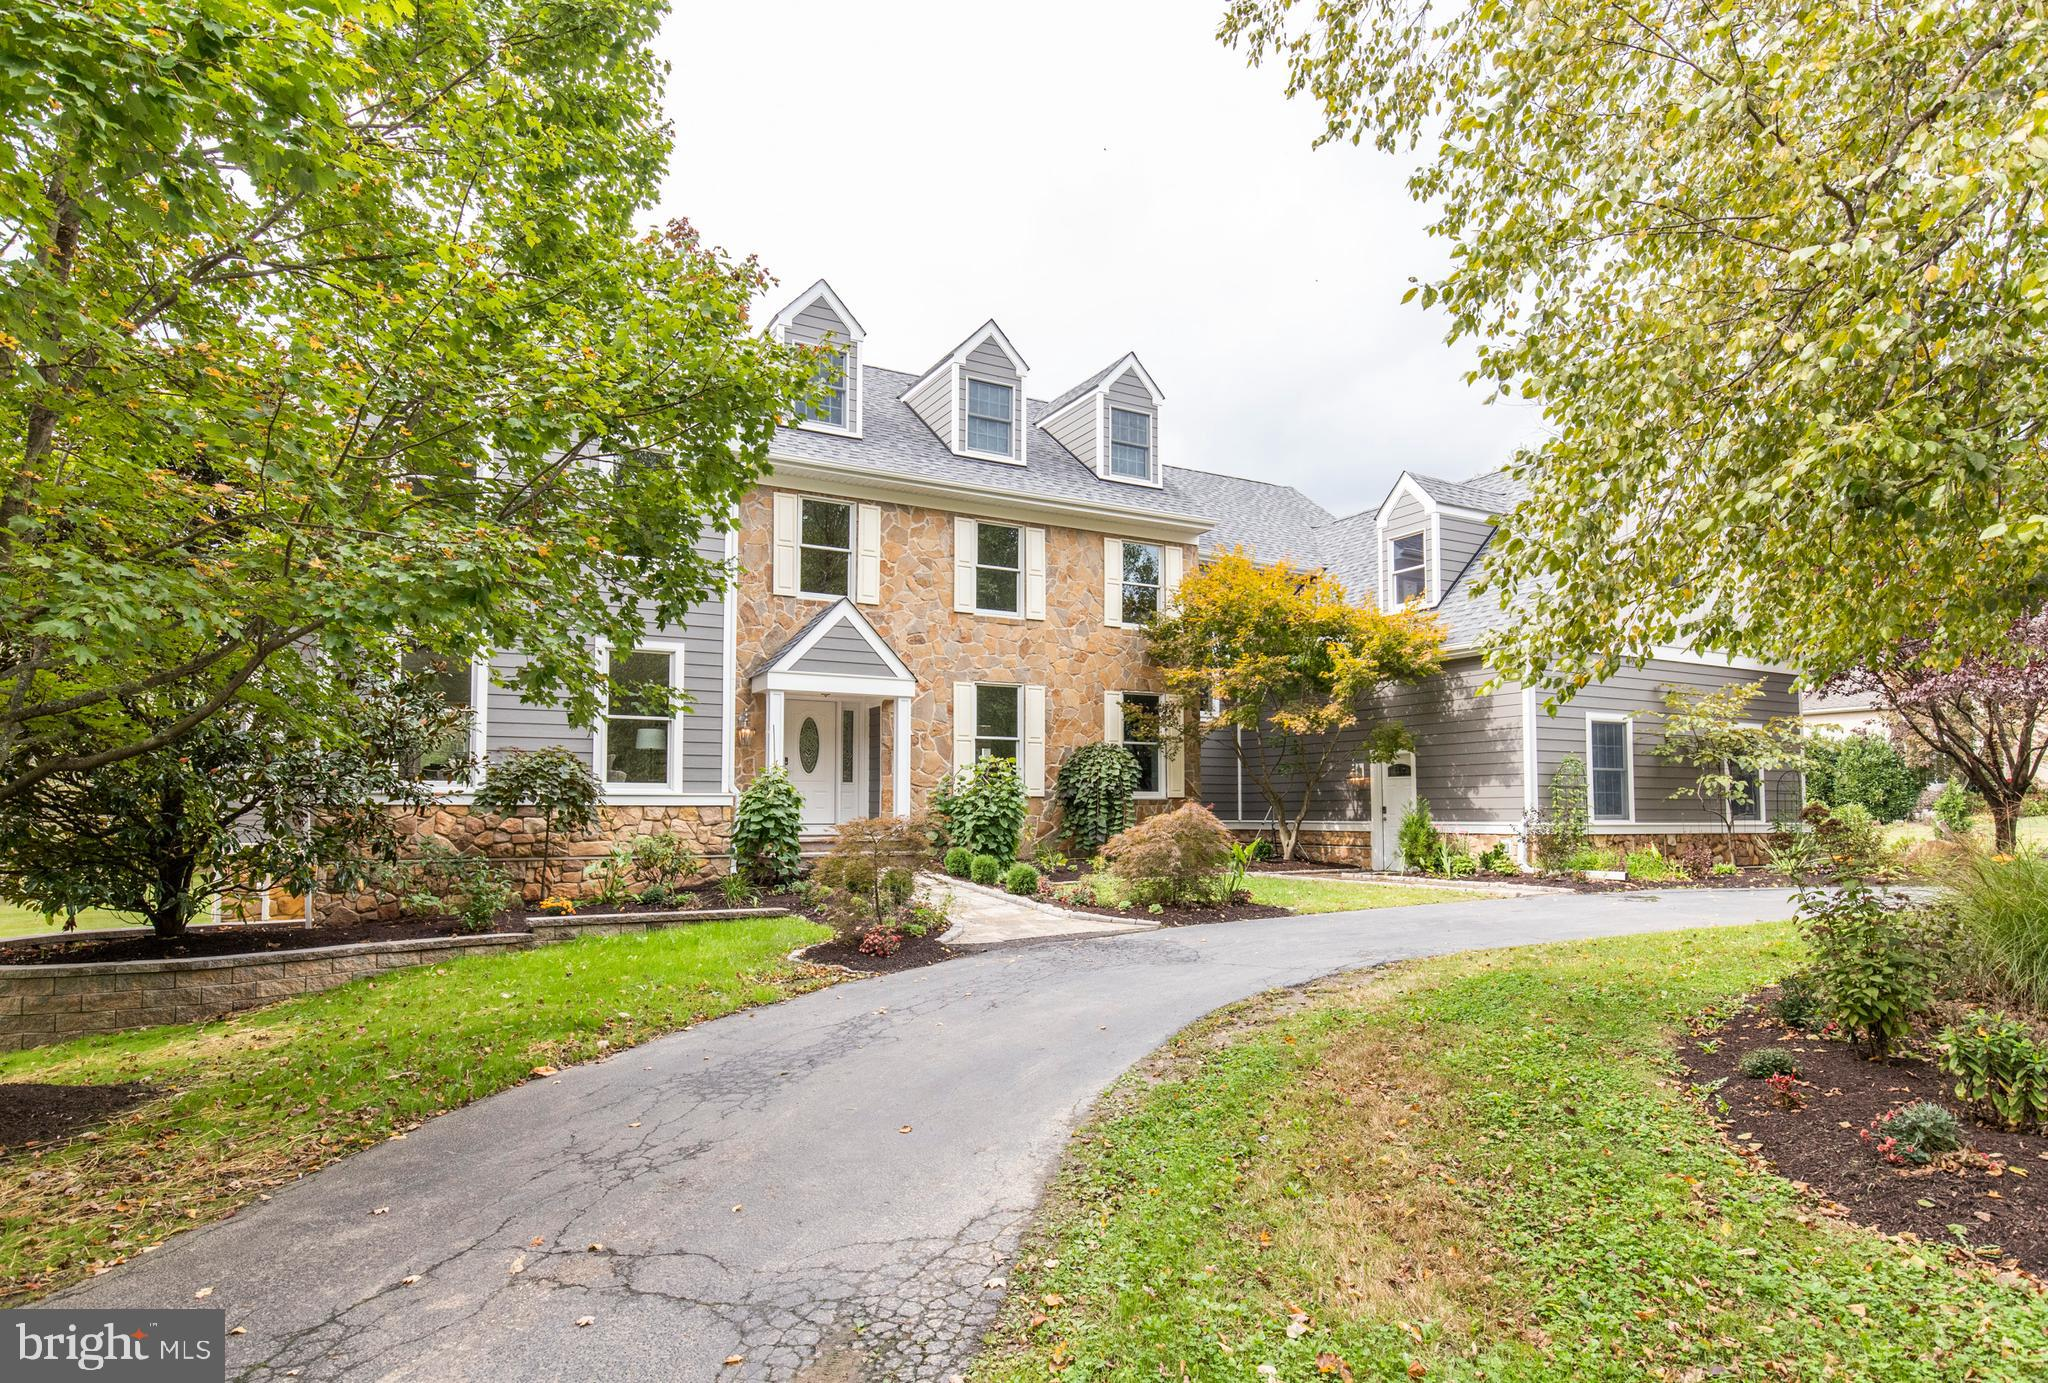 508 RESERVOIR ROAD, WEST CHESTER, PA 19380